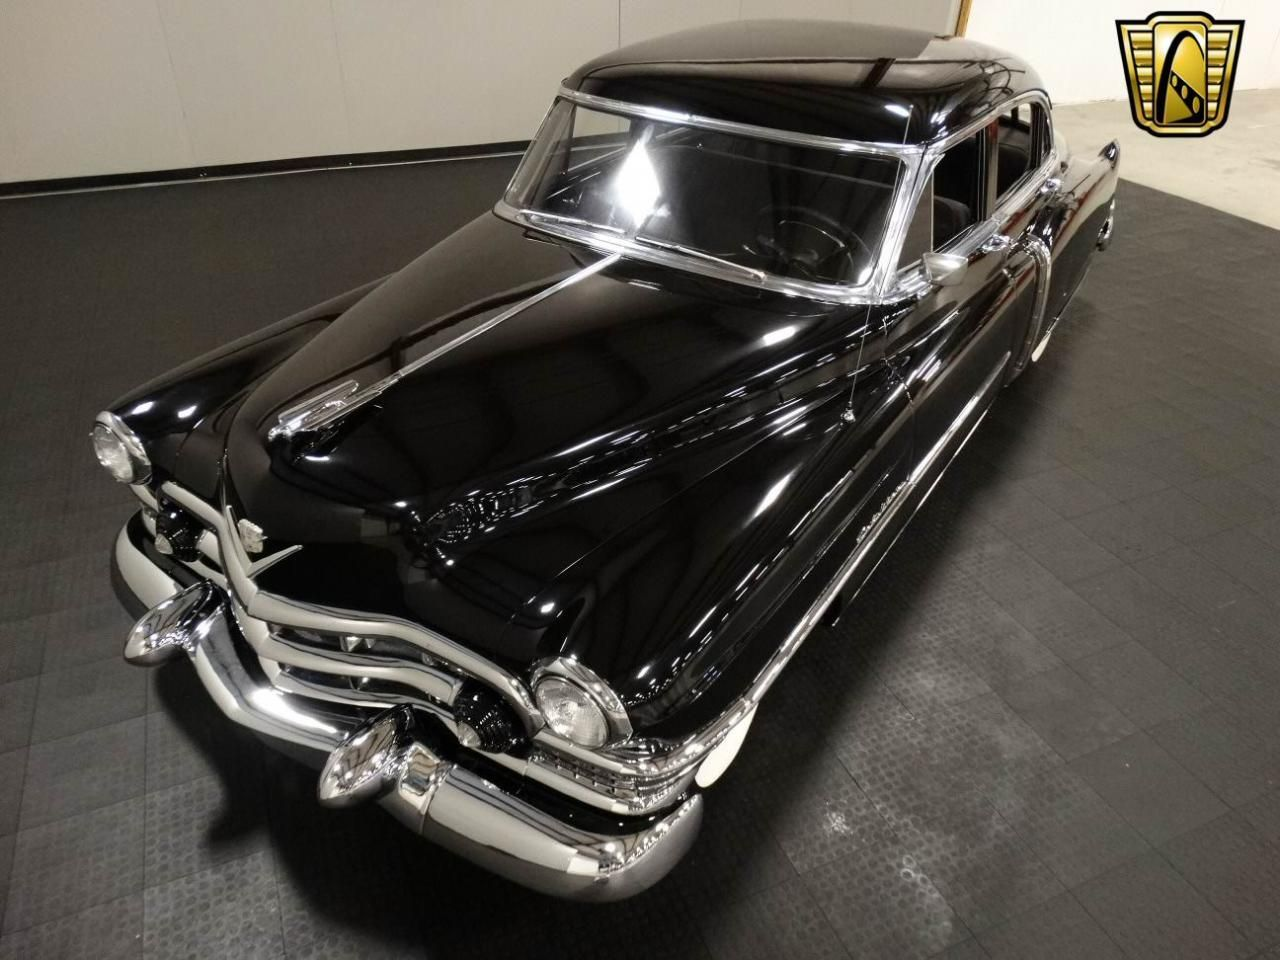 Cadillac Series 62 - 1951 images - https://www.musclecarfan.com/cadillac-series-62-1951-images/